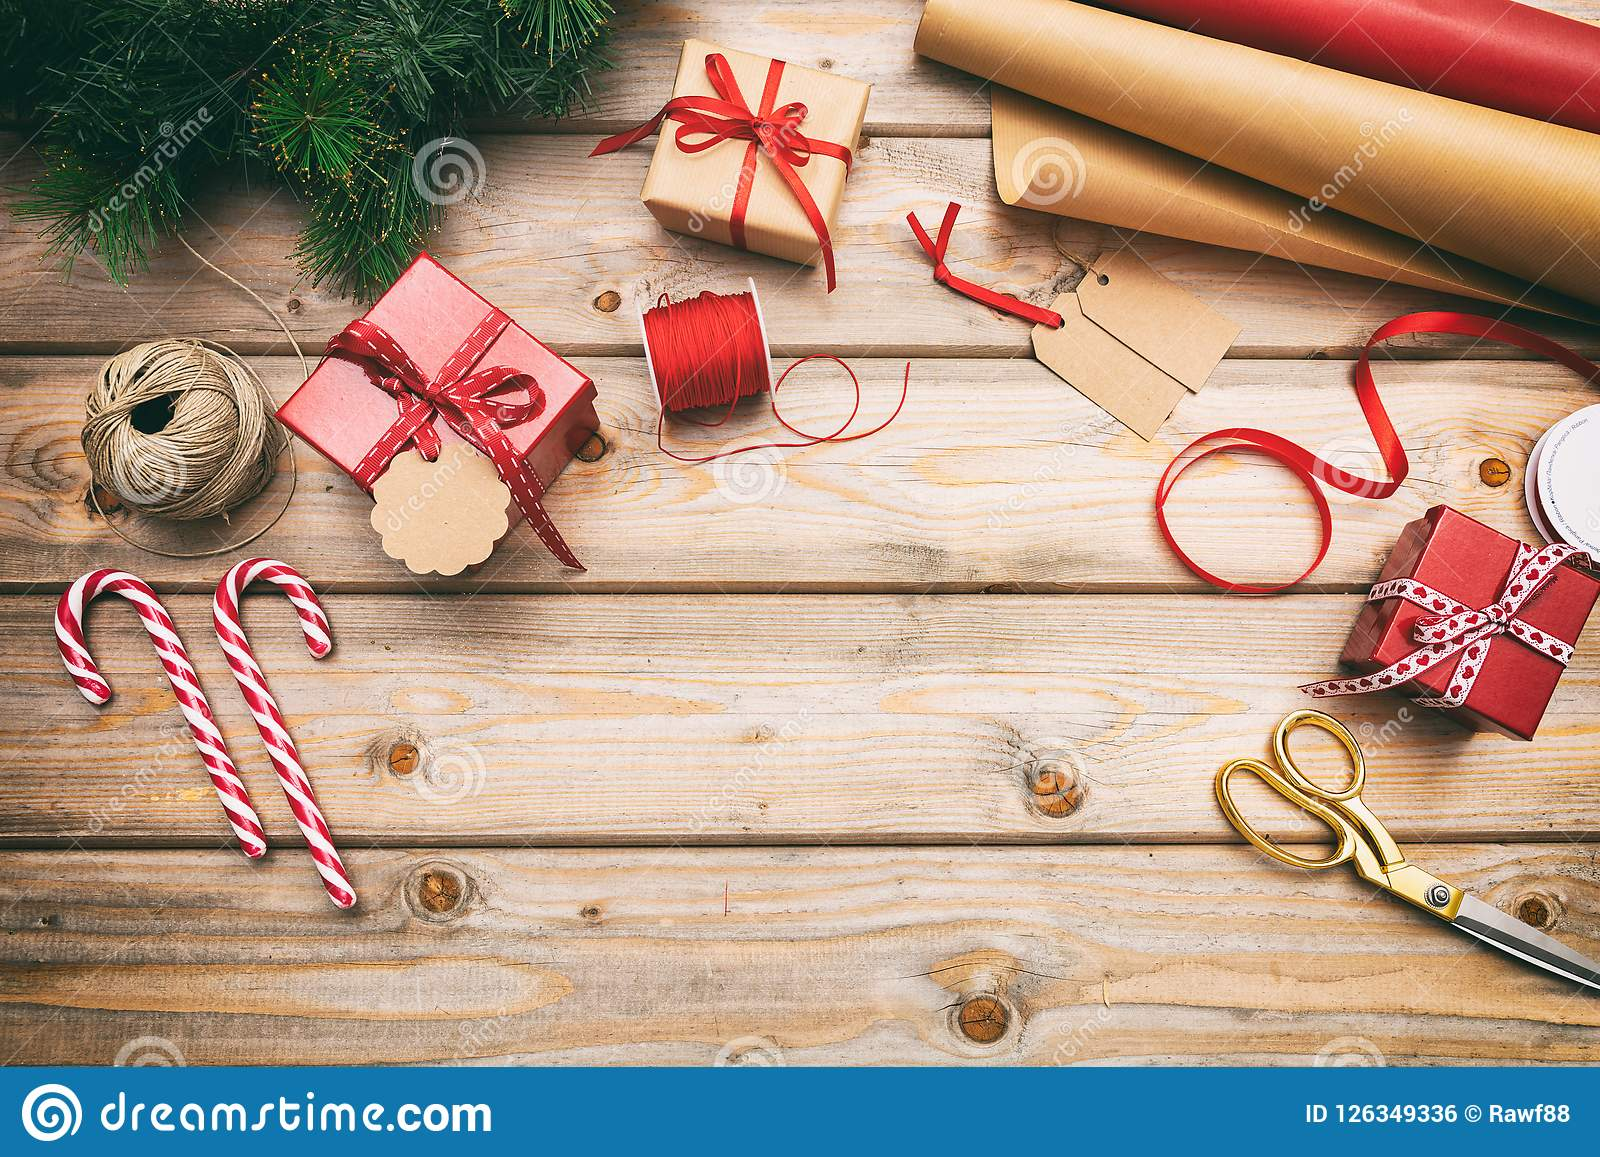 Christmas gift boxes wrapping on wooden background, copy space, top view